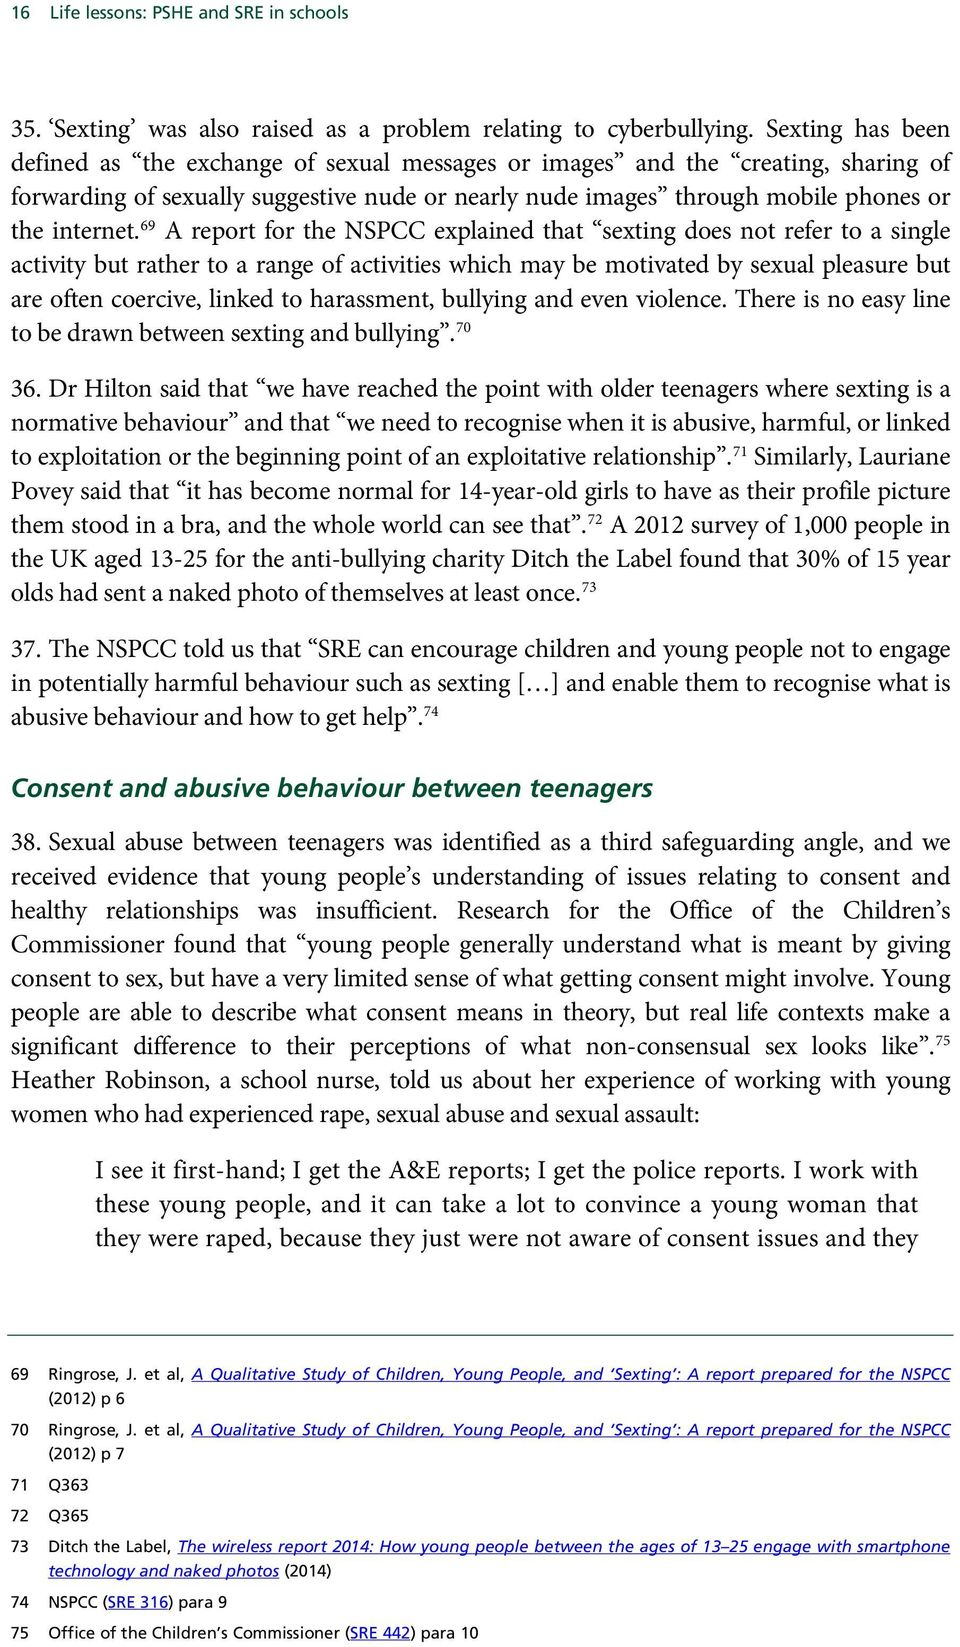 69 A report for the NSPCC explained that sexting does not refer to a single activity but rather to a range of activities which may be motivated by sexual pleasure but are often coercive, linked to